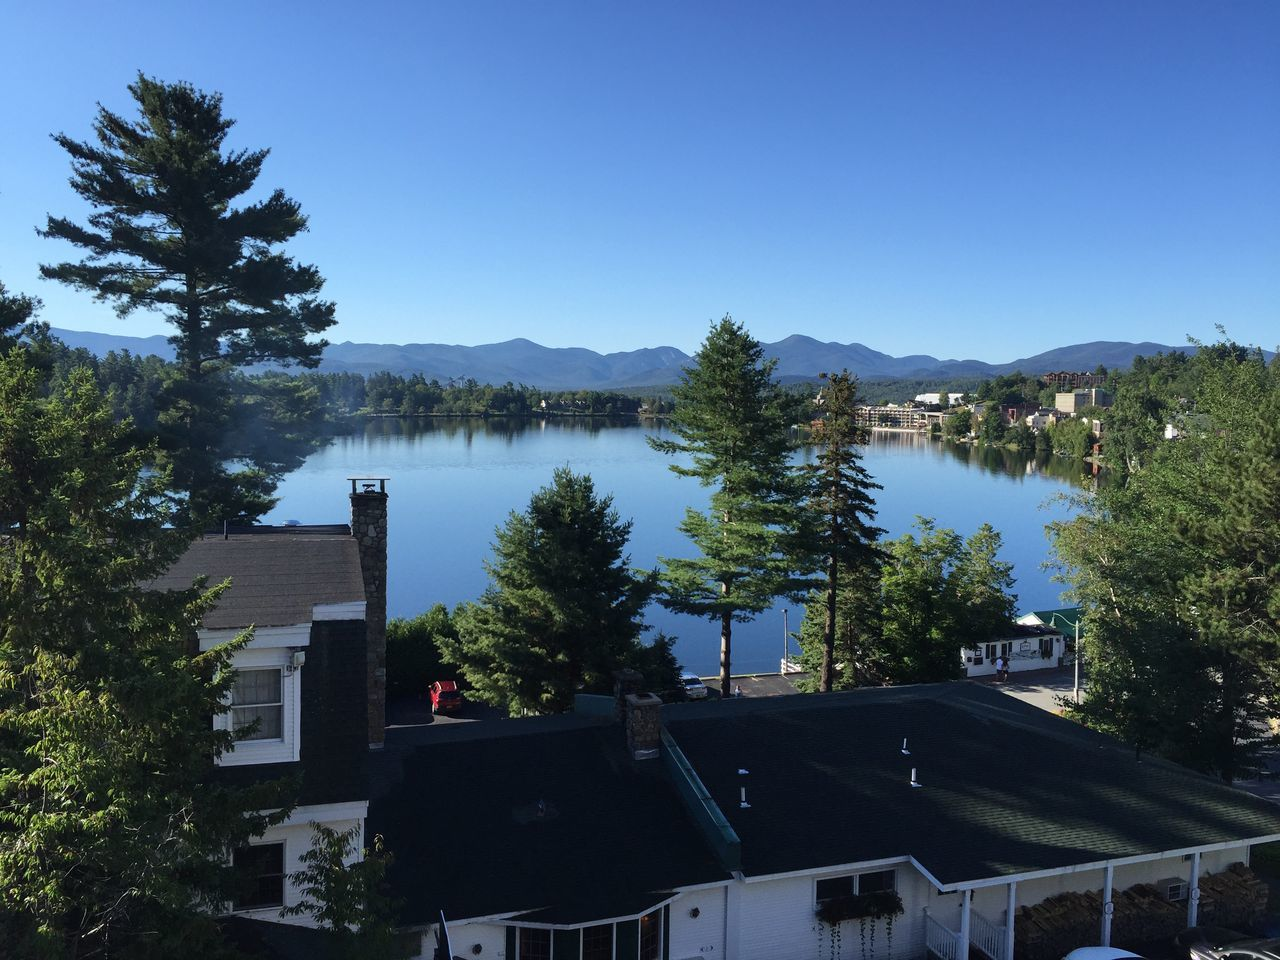 Lake Placid Mirror Lake Lake Water Adirondack Mountains Tree Building Exterior Built Structure Clear Sky Architecture House Beauty In Nature Nature Outdoors Growth Sky No People Day Tranquility Scenics